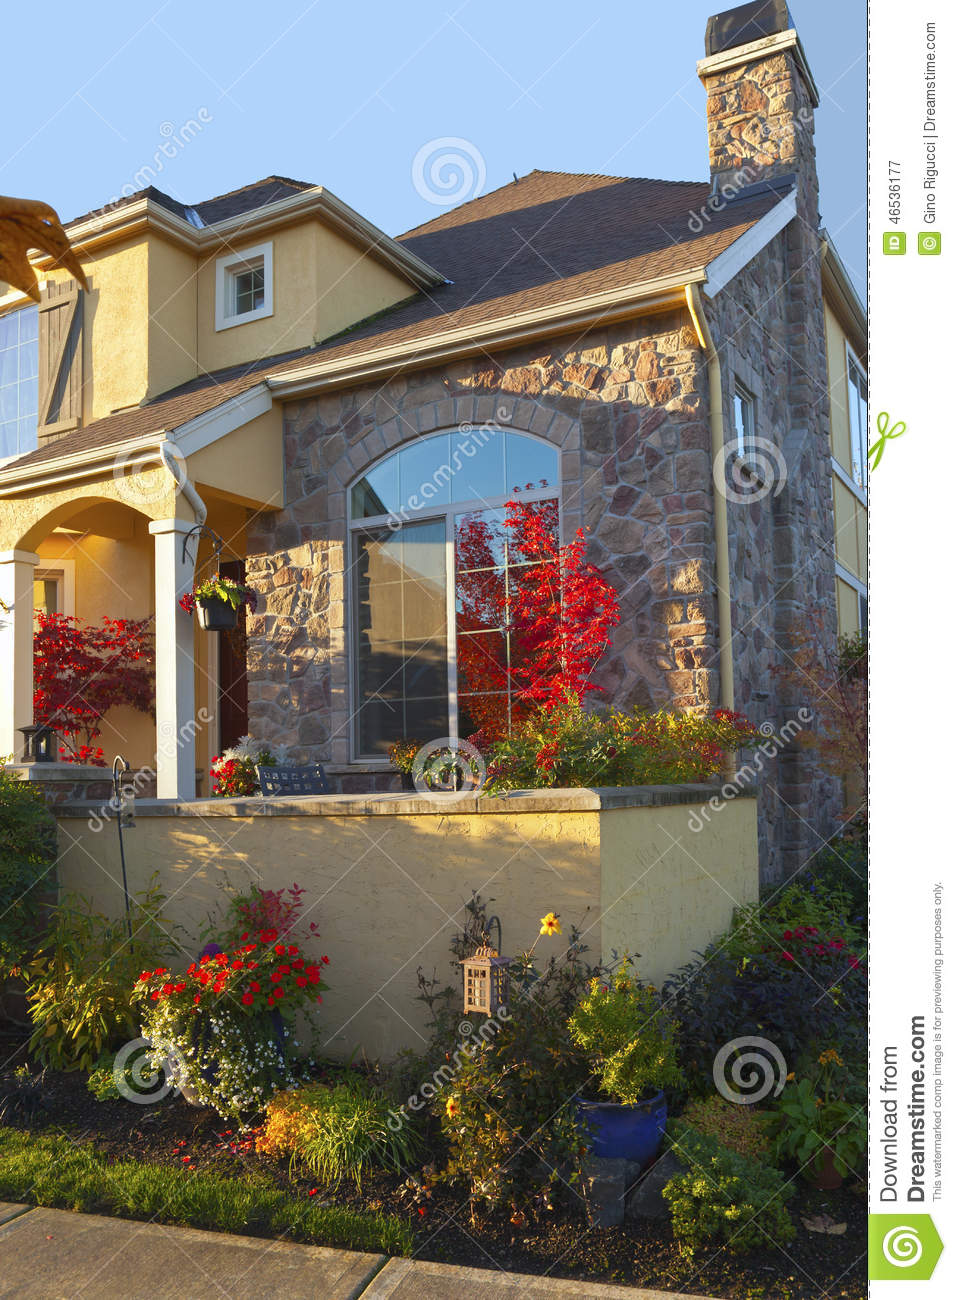 Colorful residential house with plants royalty free stock for Colorful tree house